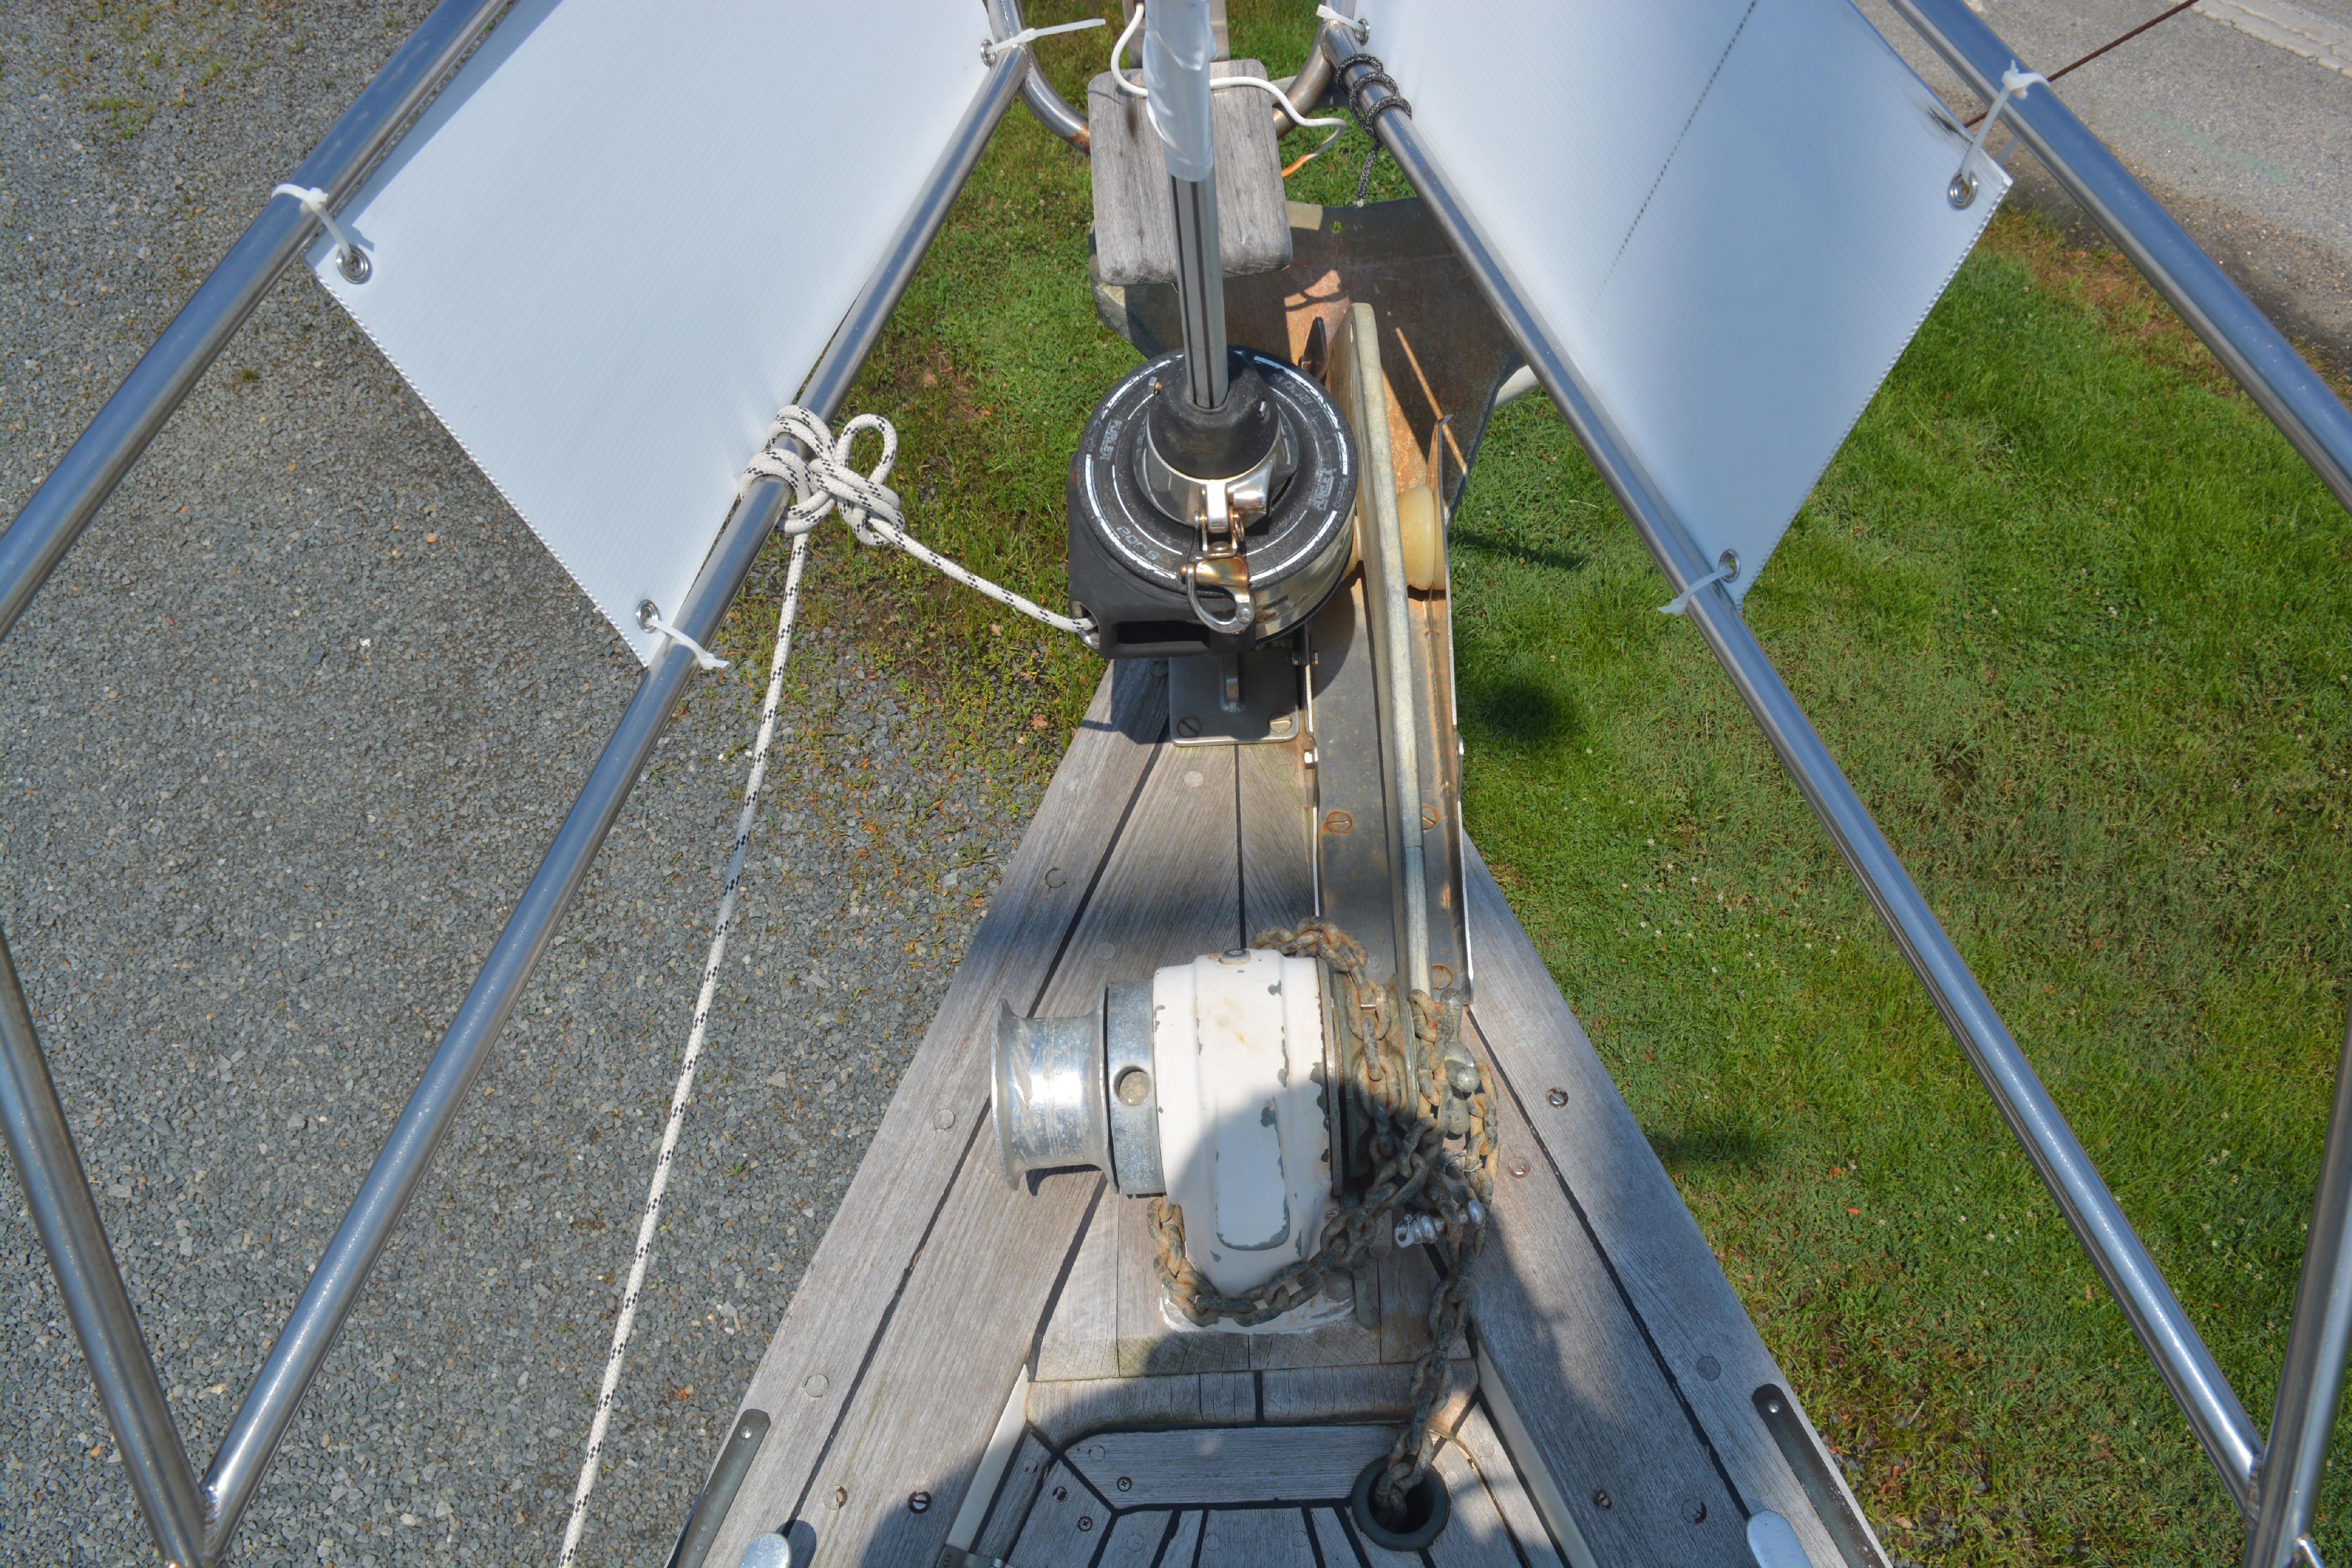 Bow pulpit and windlass